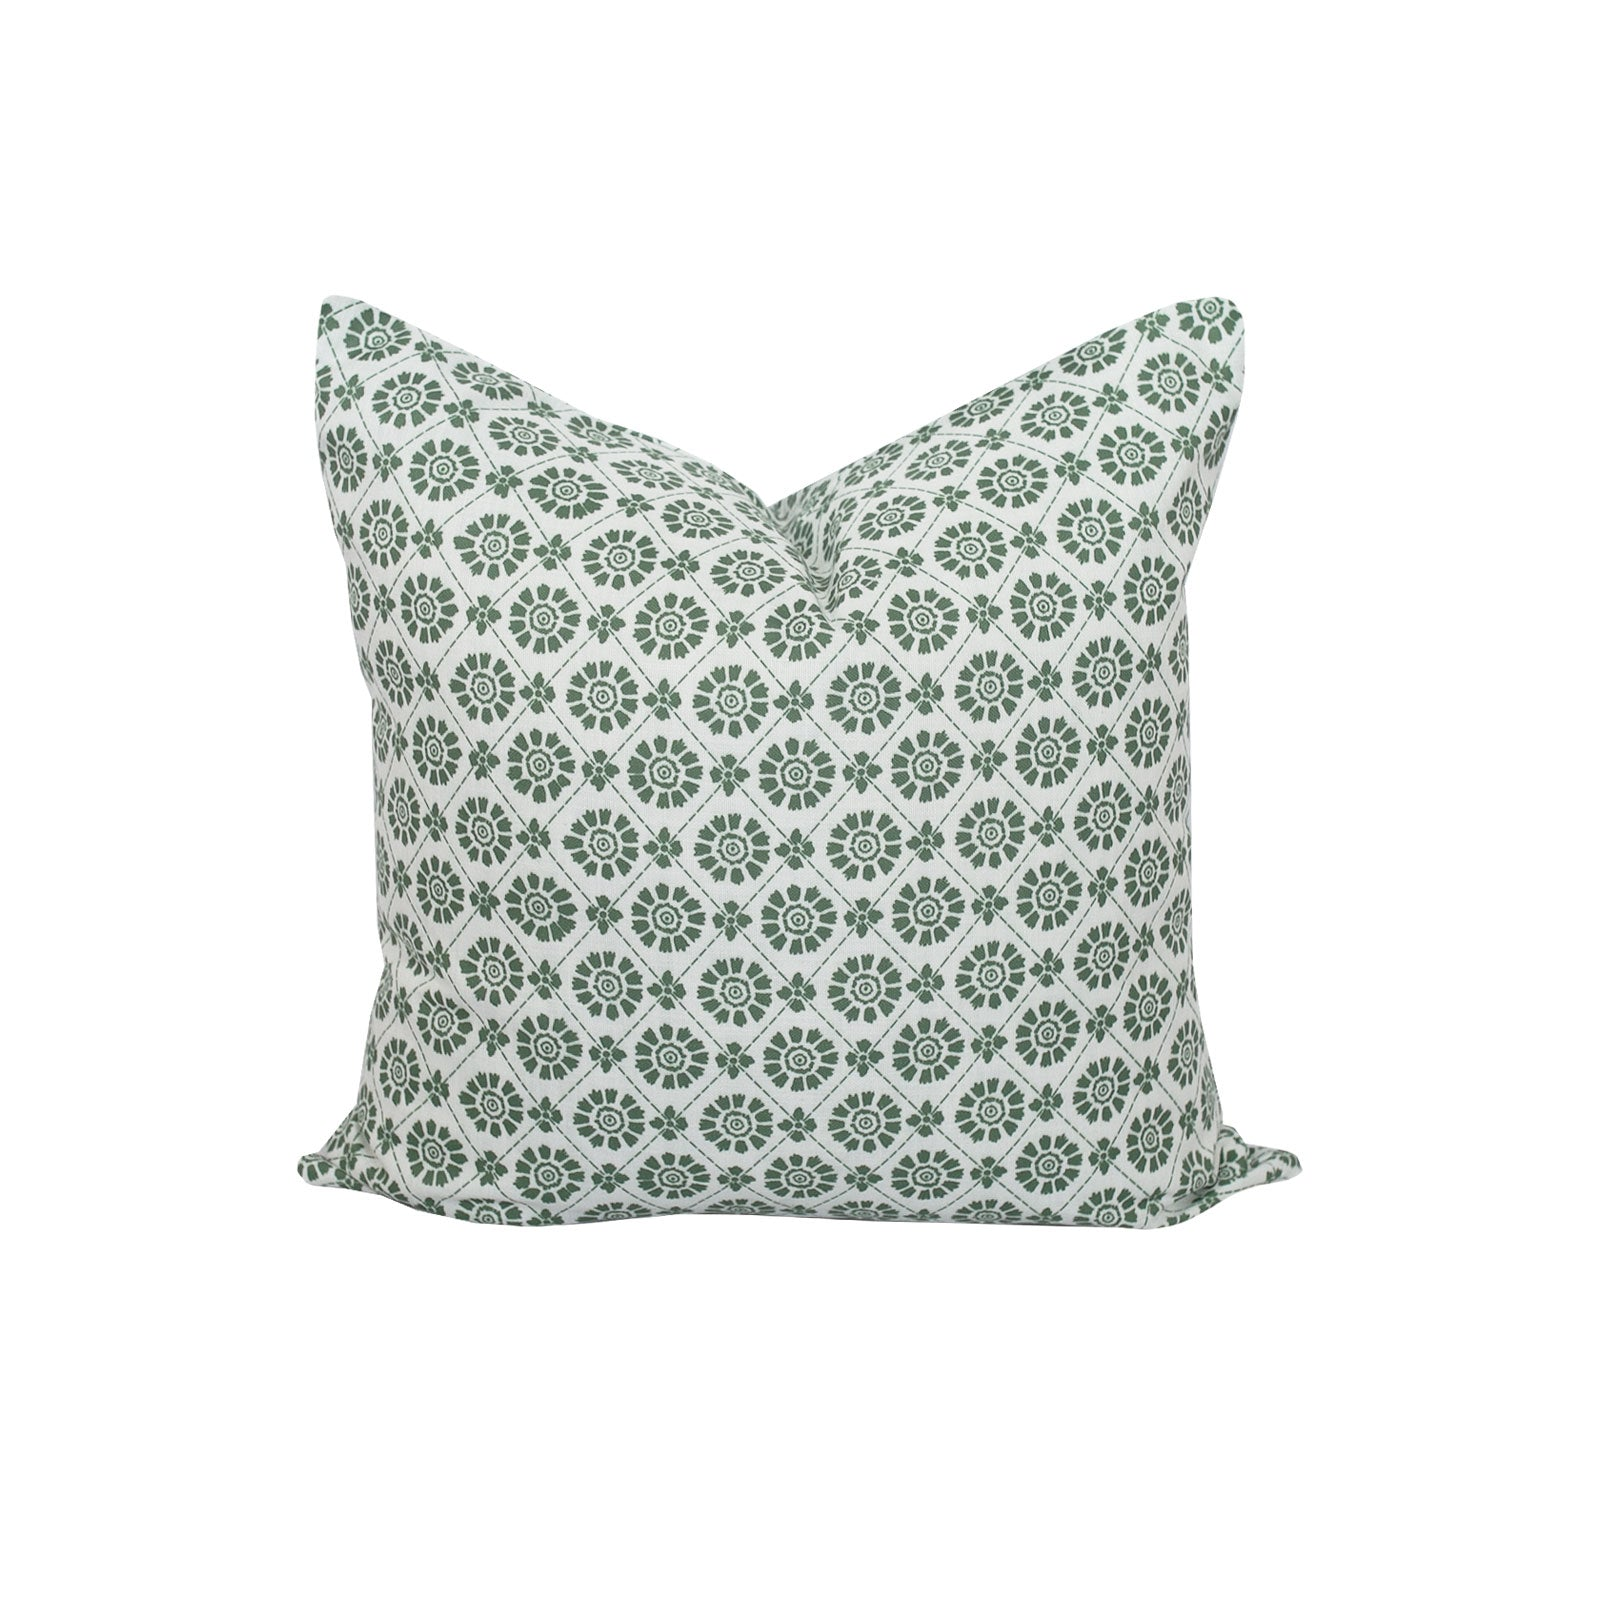 Harriet Pillow in Sage